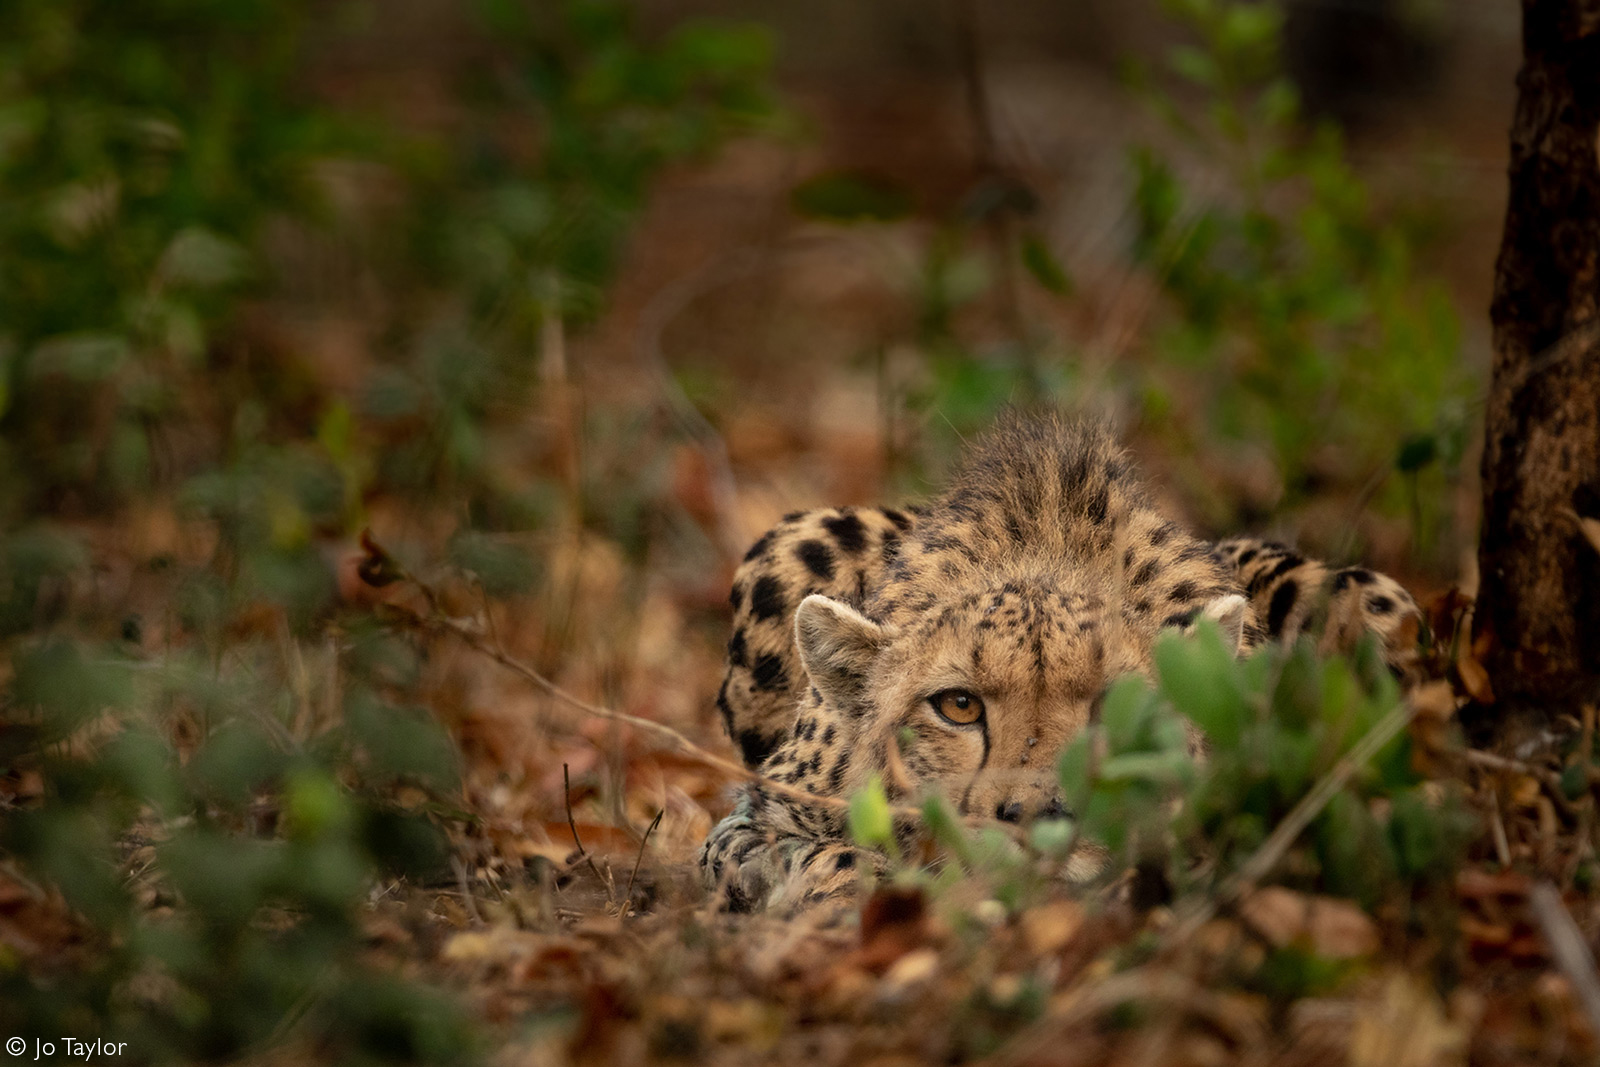 A newly introduced cheetah keeps a sharp eye out after relocating from South Africa to Malawi. Majete Wildlife Reserve, Malawi © Jo Taylor